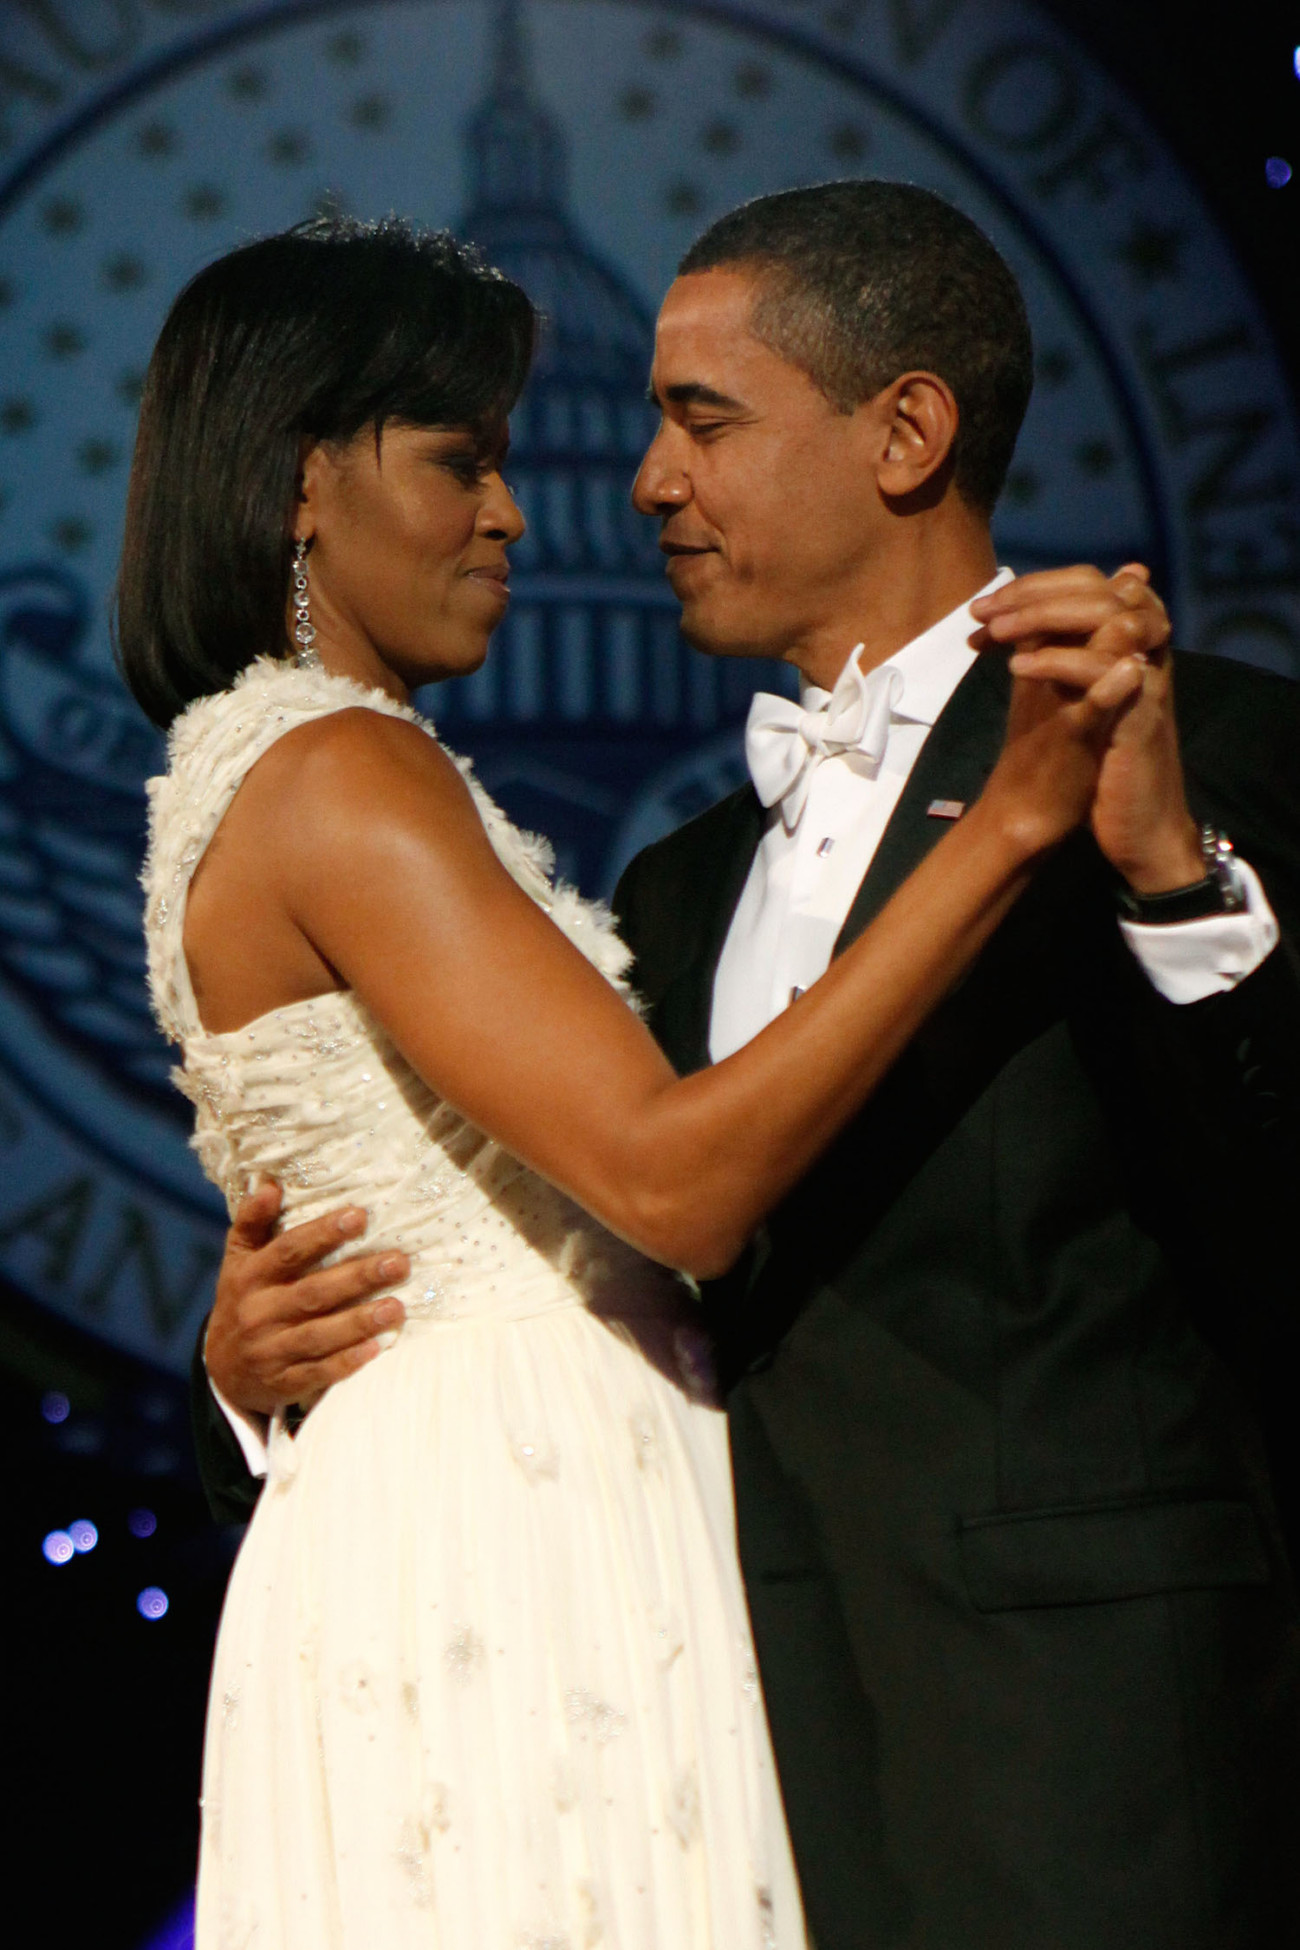 attends the Neighborhood Inaugural Ball at the Washington Convention Center on January 20, 2009 in Washington, DC. Obama became the first African-American to be elected to the office of President in the history of the United States.